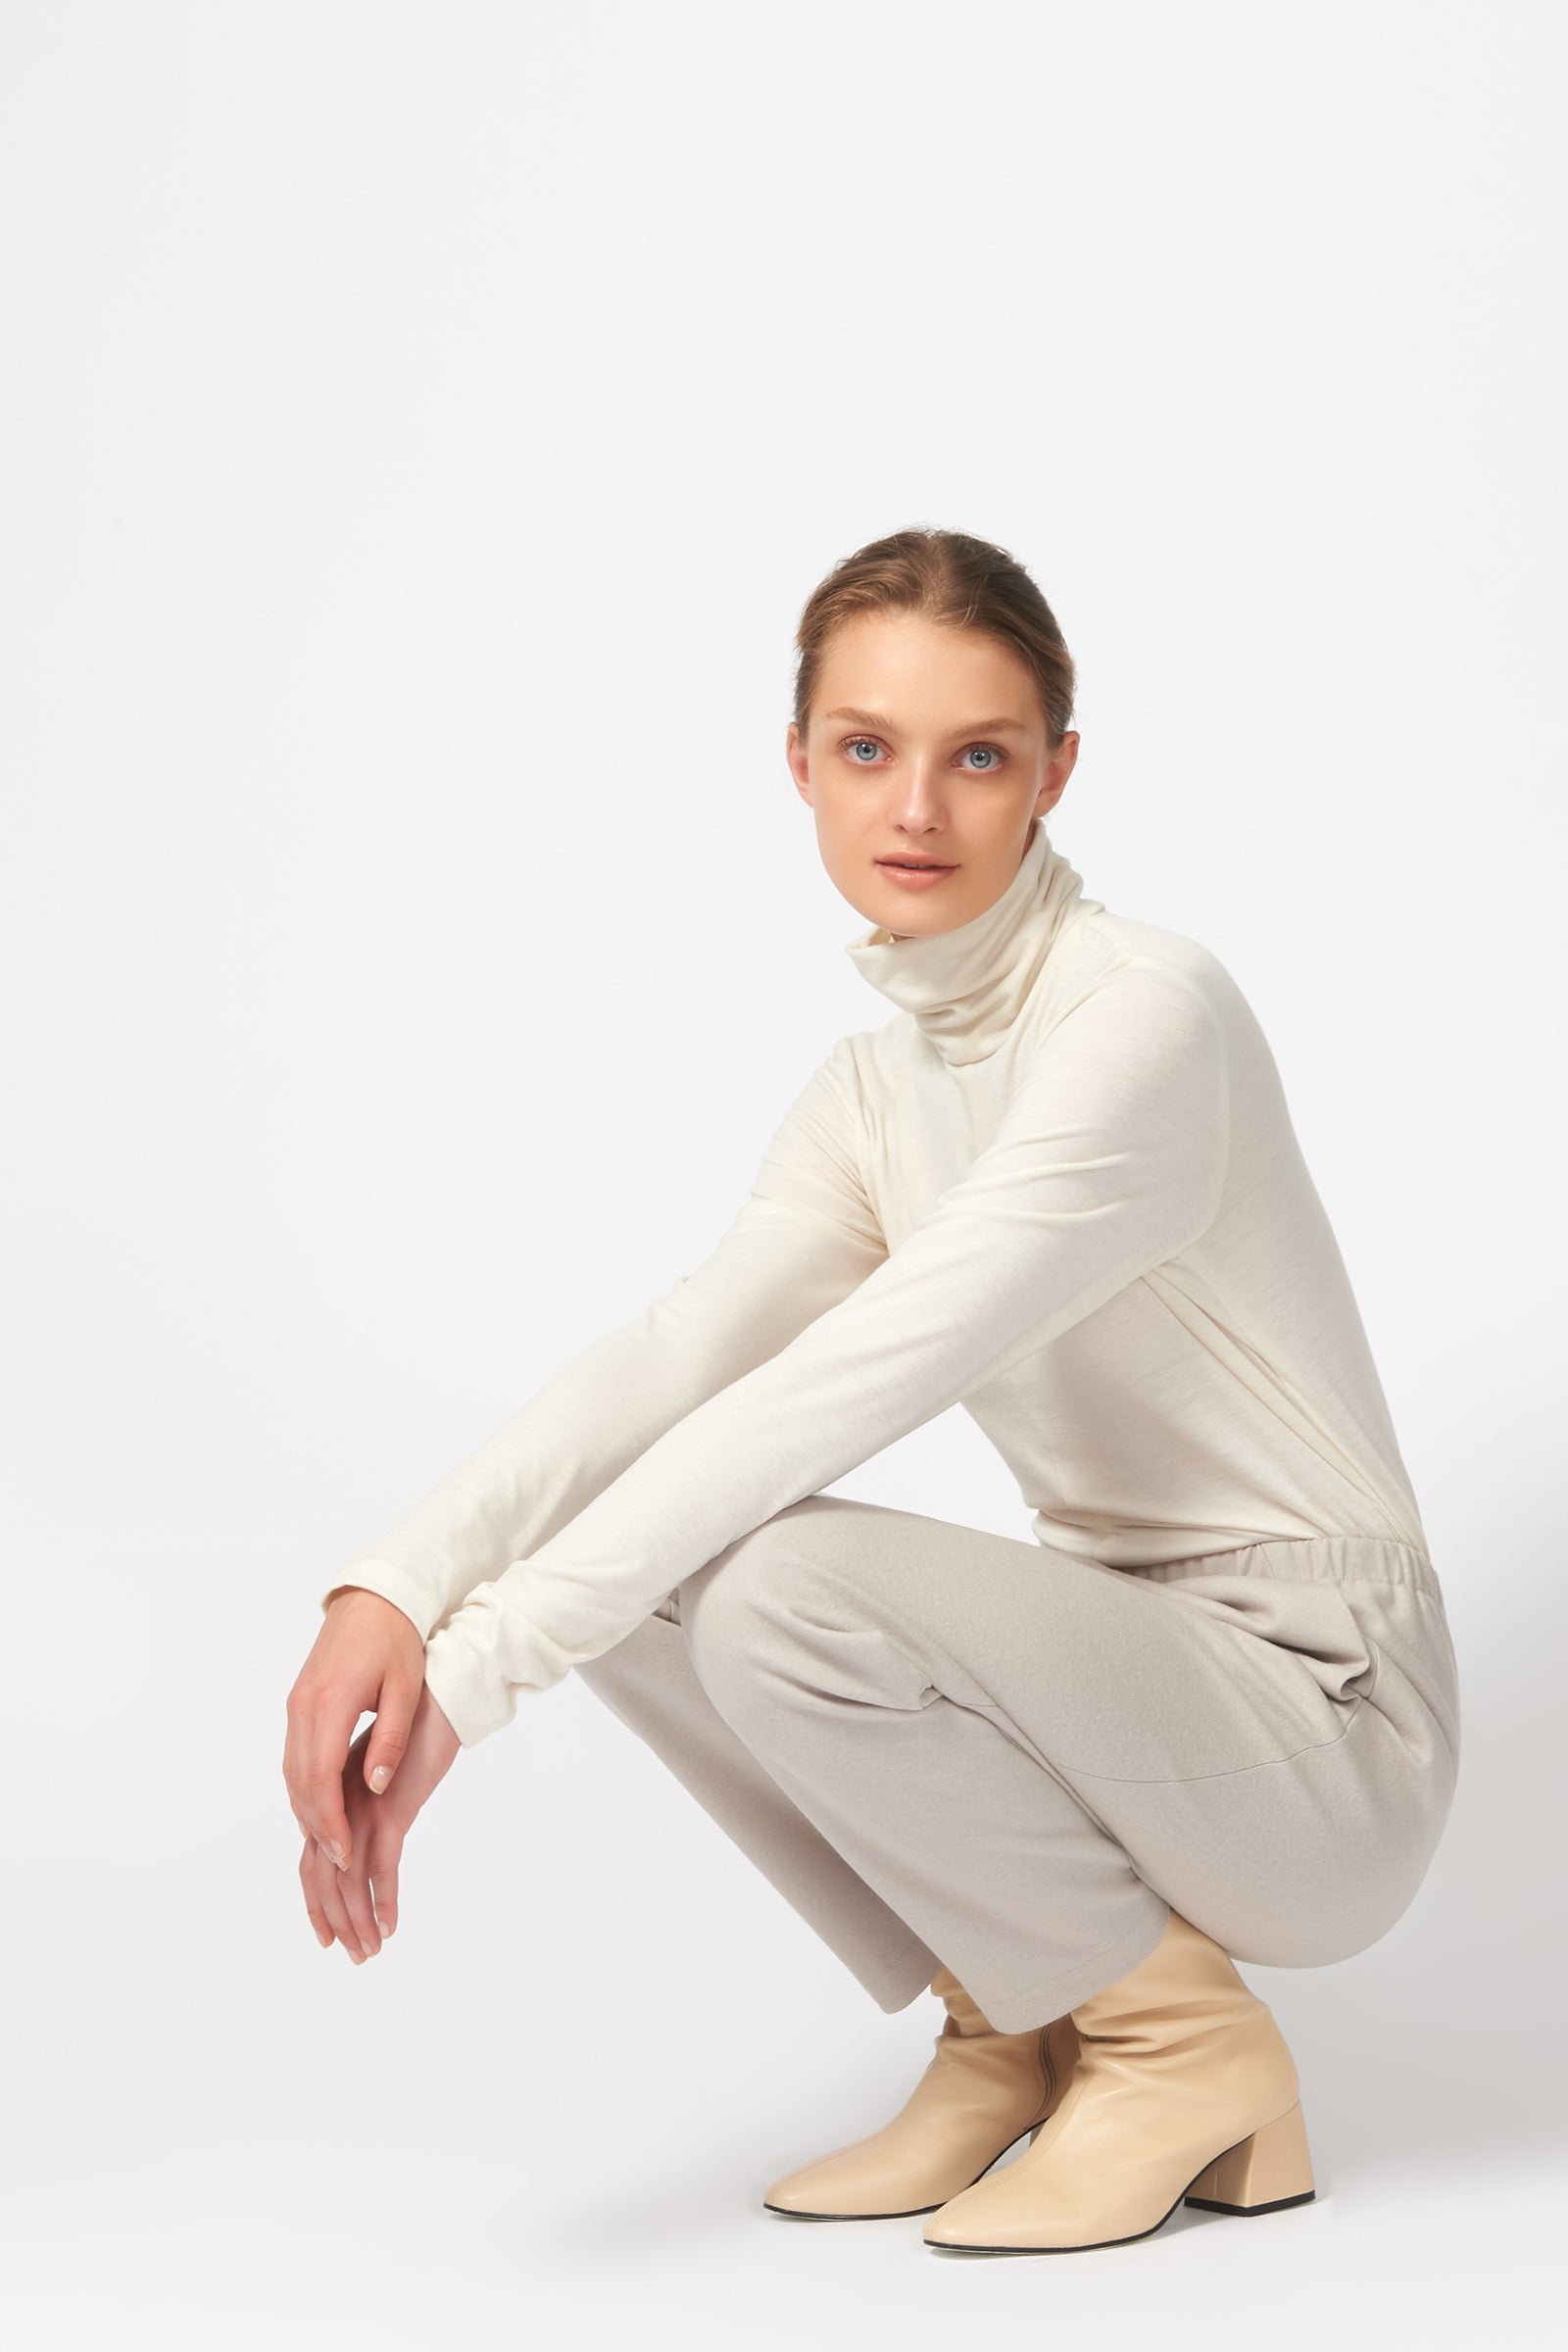 Kal Rieman Felted Jersey Angle Seam Jogger in Mink on Model Crouching Down